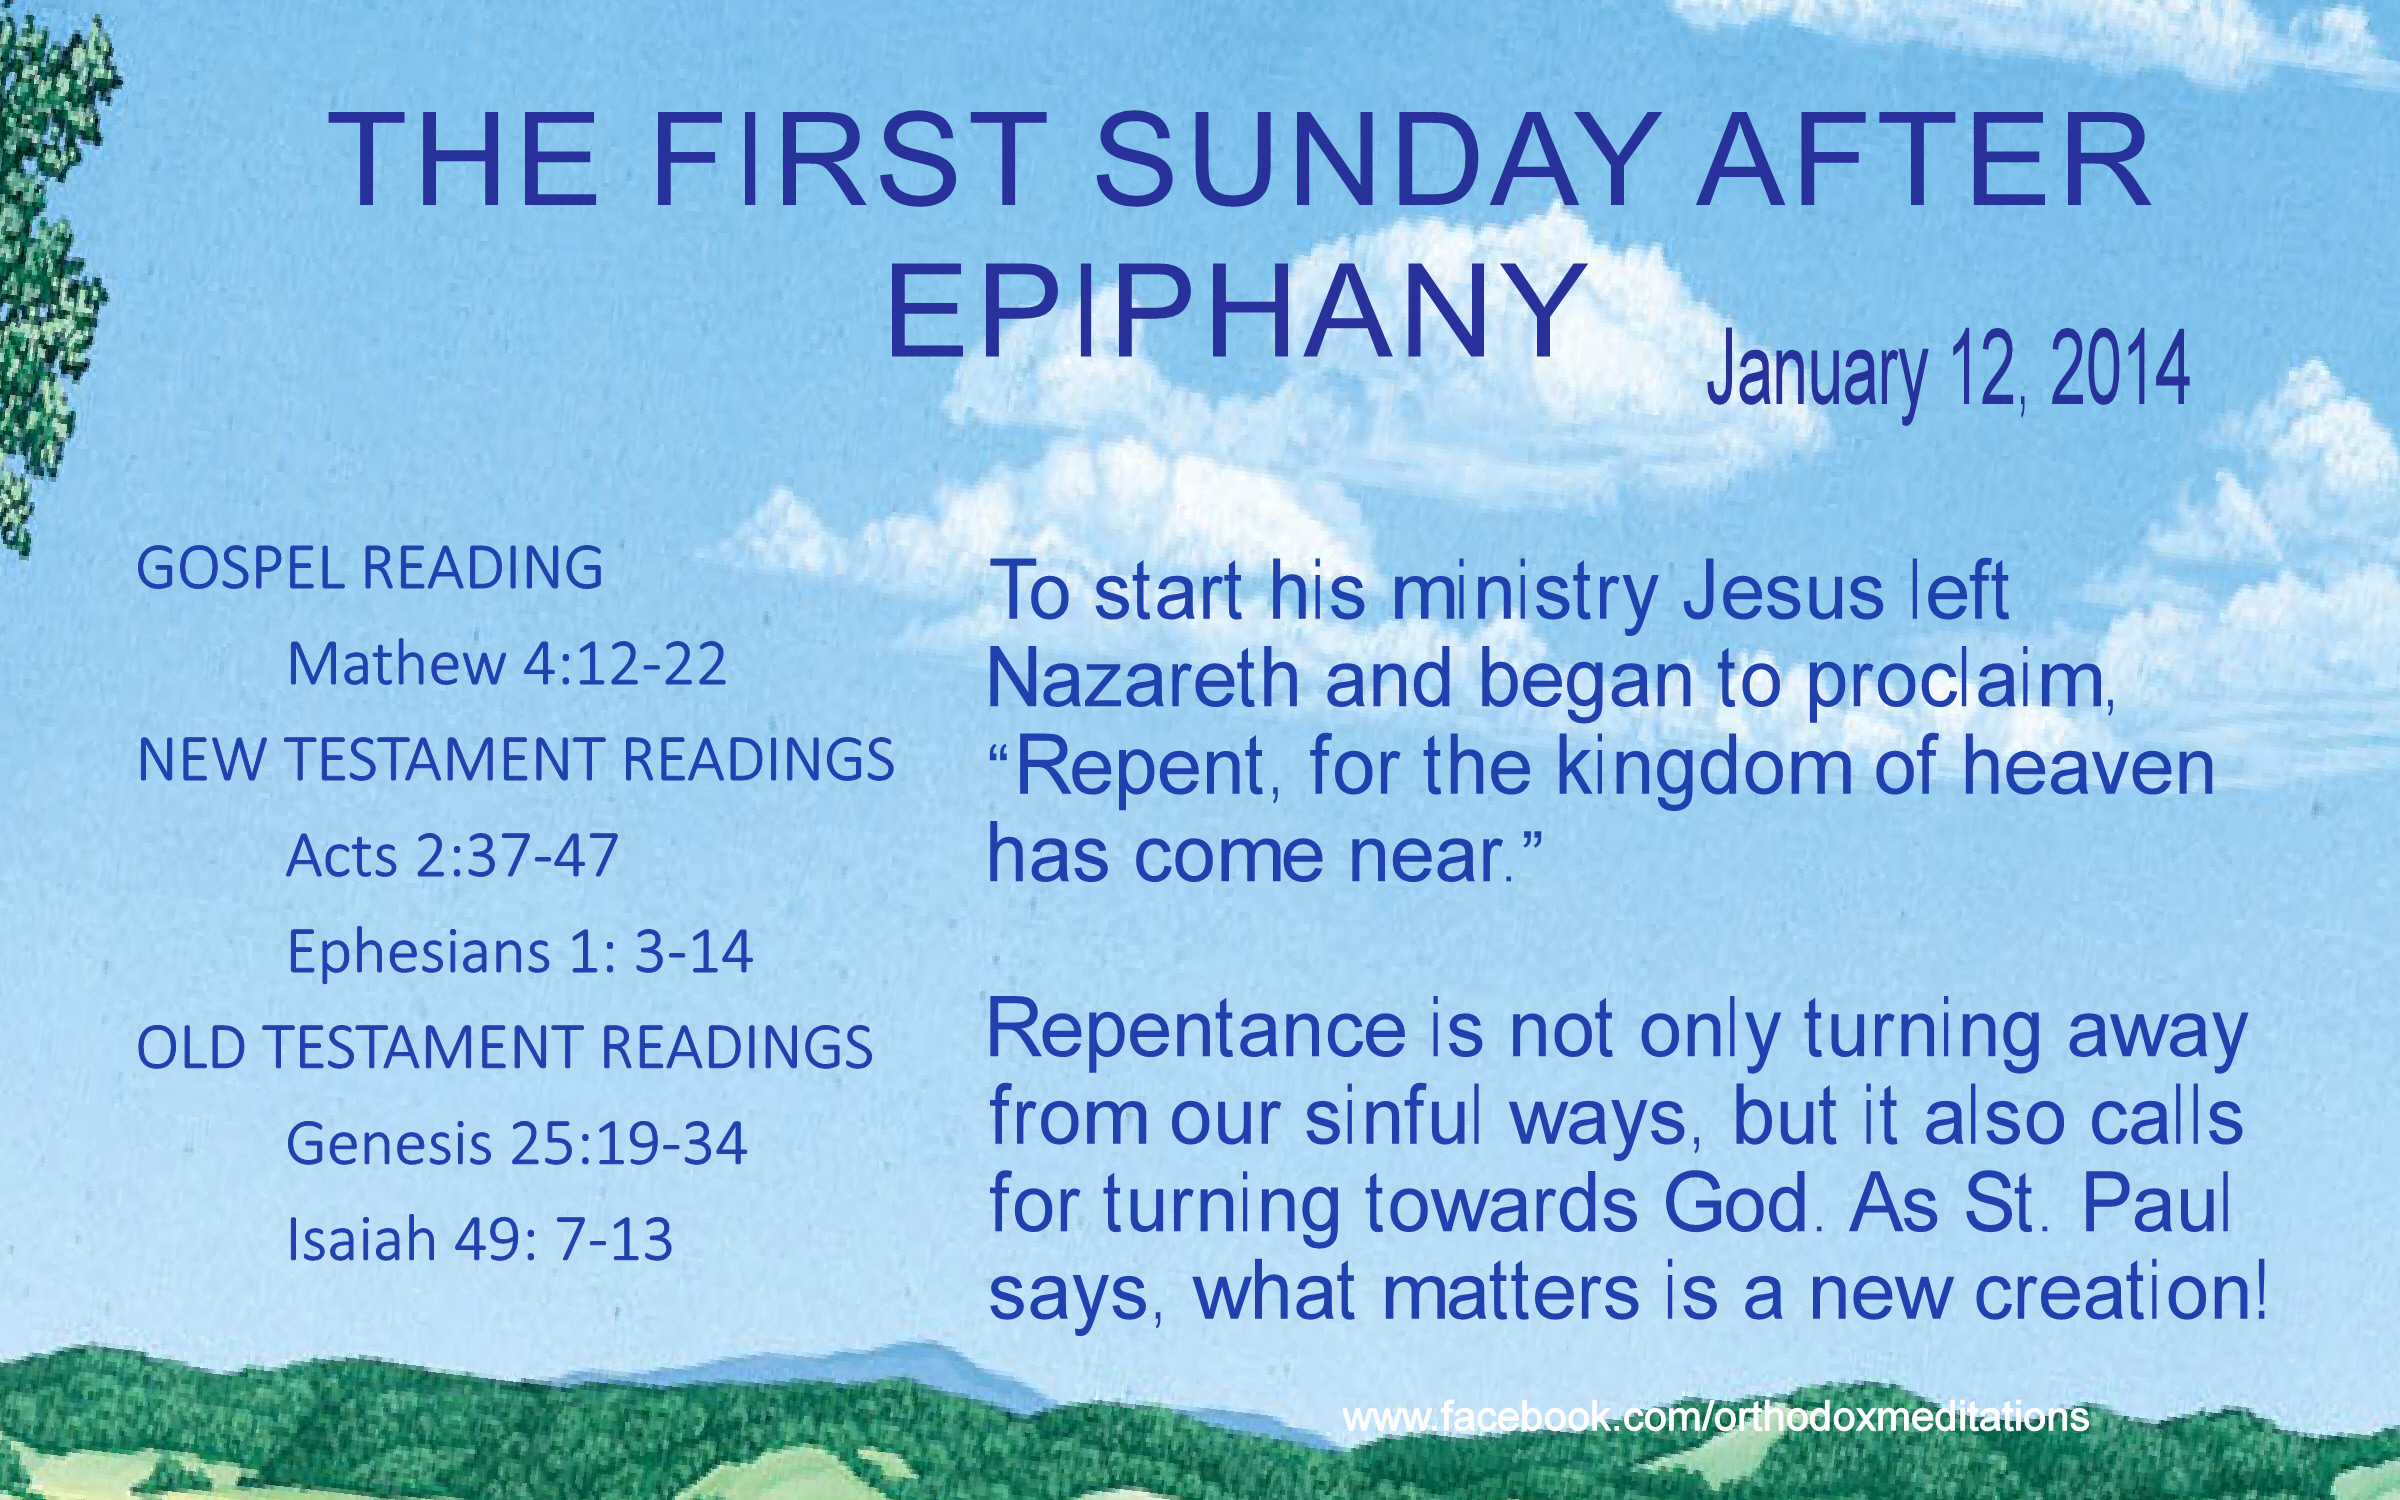 THE FIRST SUNDAY AFTER EPIPHANY NEW_001